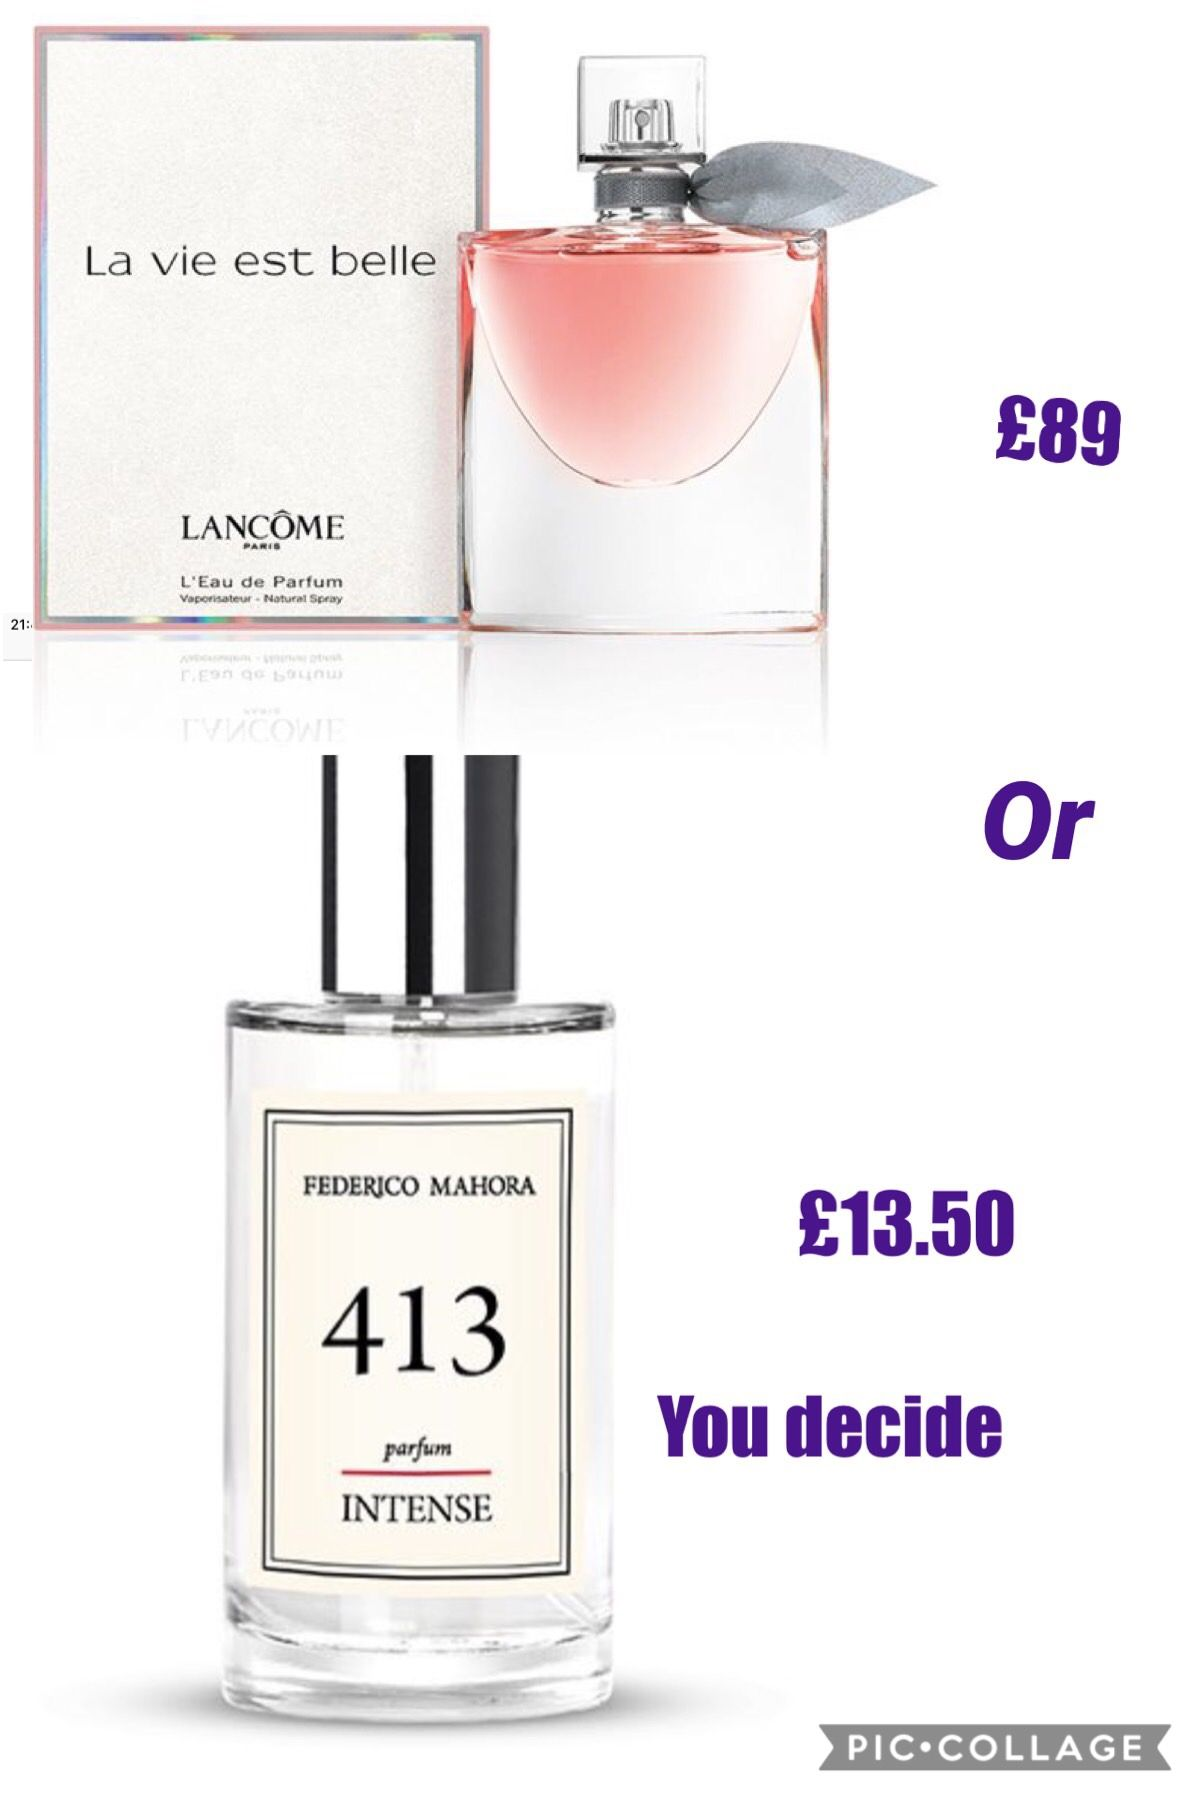 Pin on Perfume and fragrance